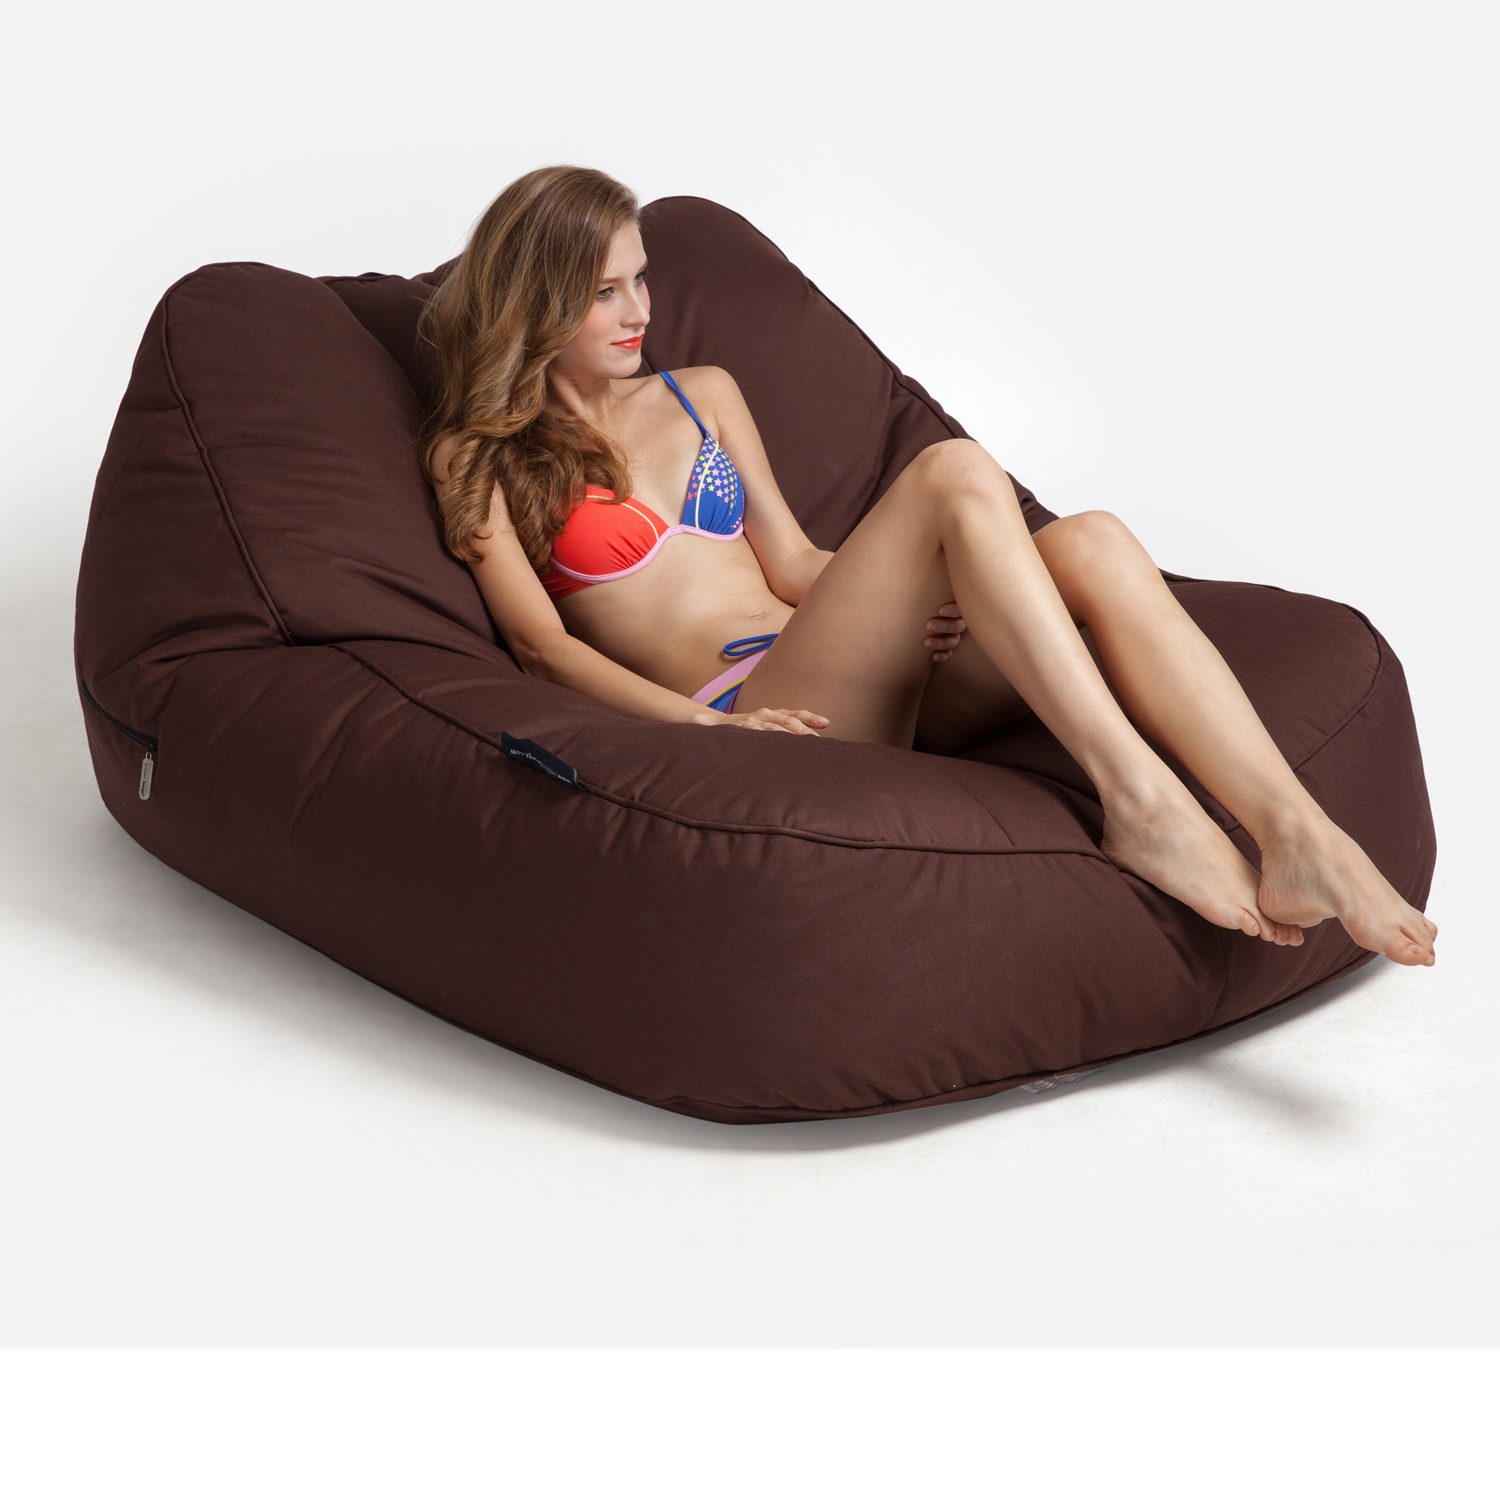 Outdoor Bean Bags Satellite Twin Sofa Earthcore Brown